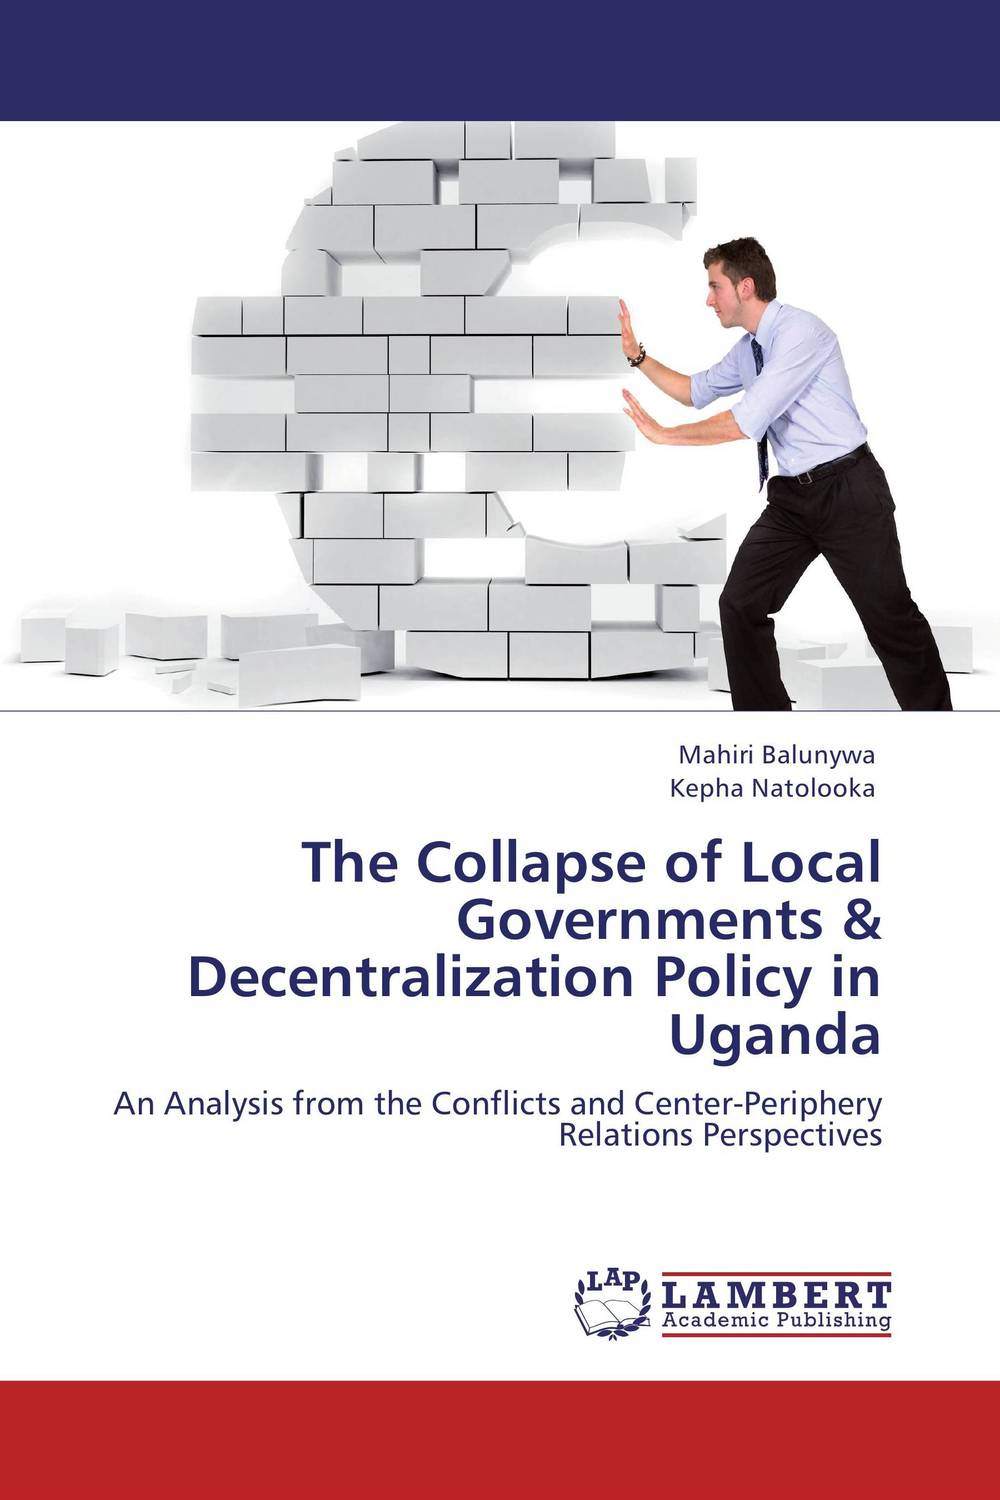 The Collapse of Local Governments & Decentralization Policy in Uganda verne j journey to the centre of the earth